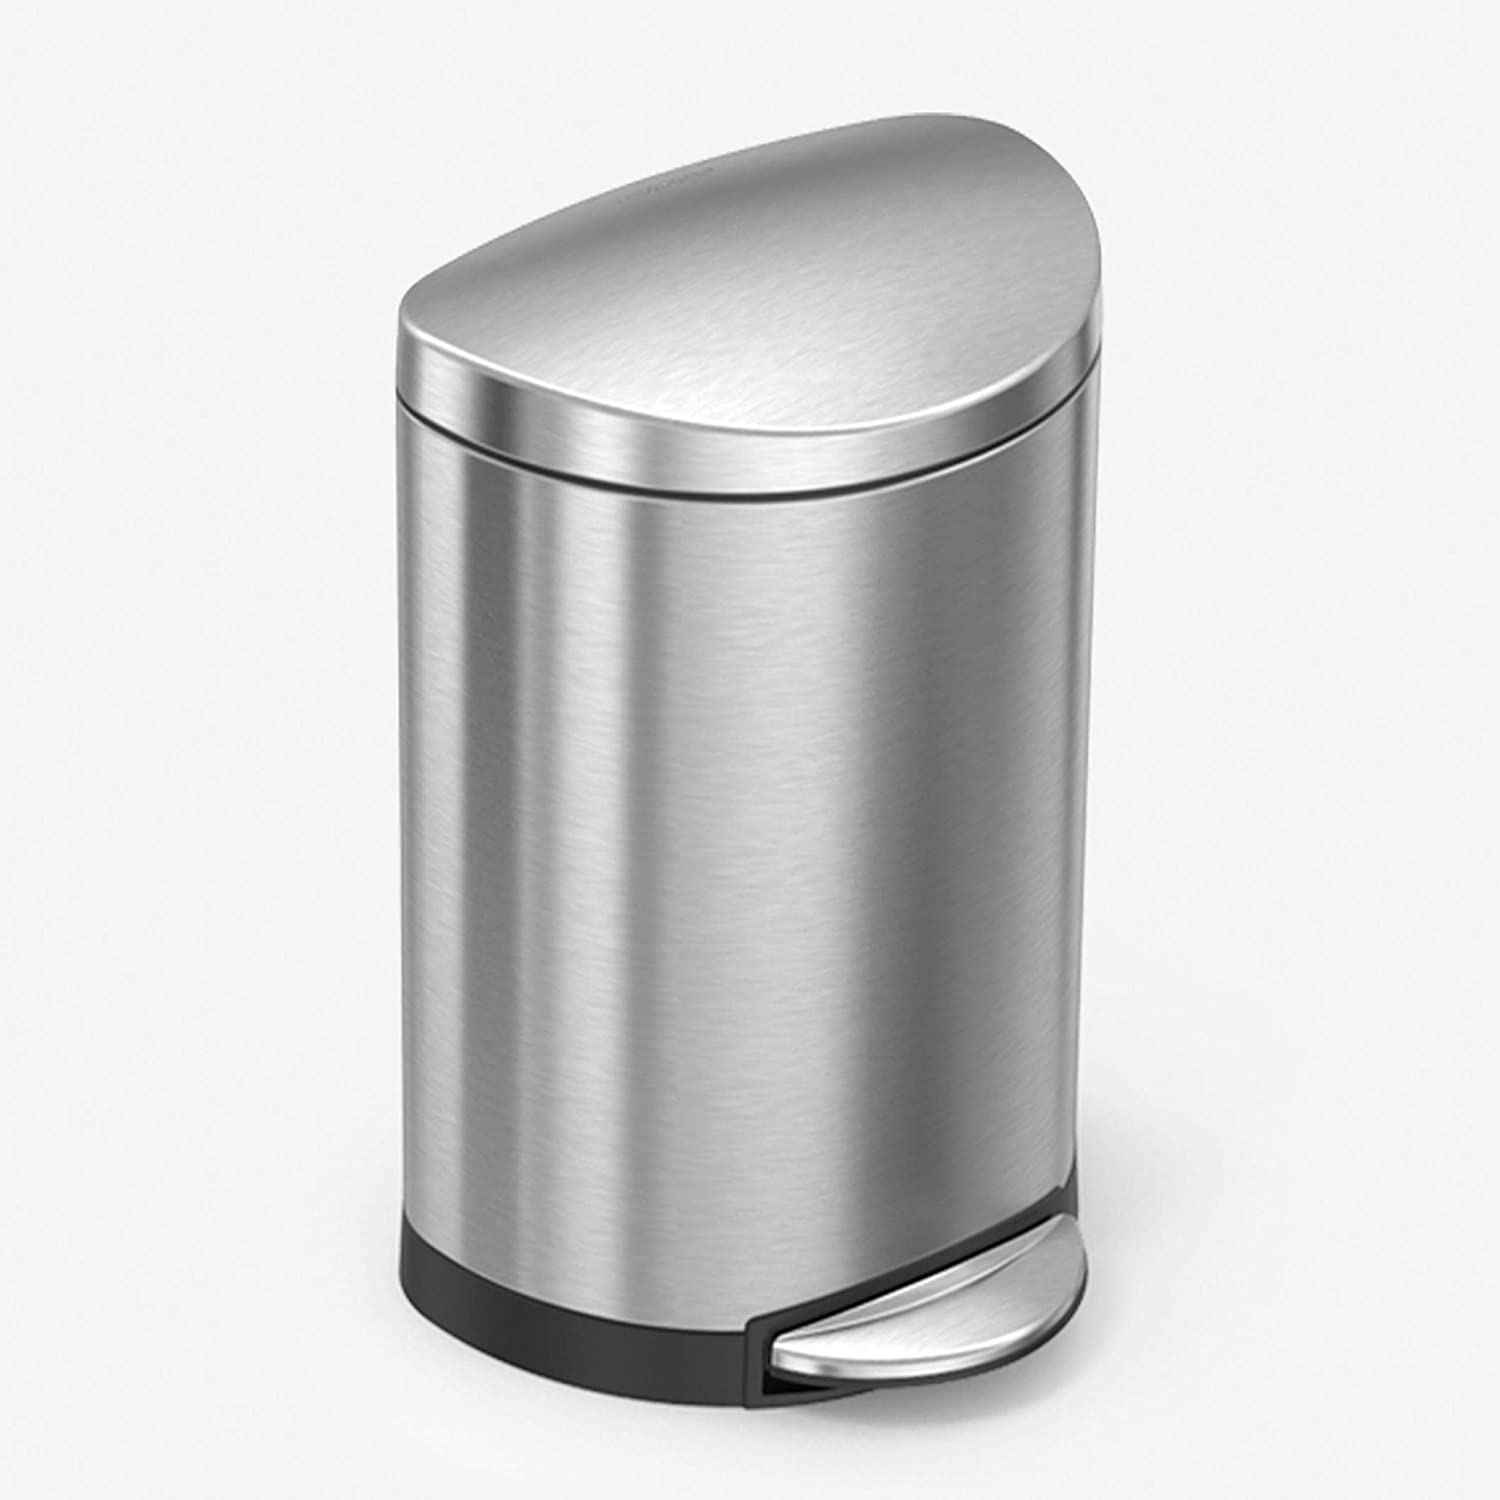 Amazon Com Simplehuman 6 Liter 1 6 Gallon Semi Round Bathroom Step Trash Can Brushed Stainless Steel Home Kitchen